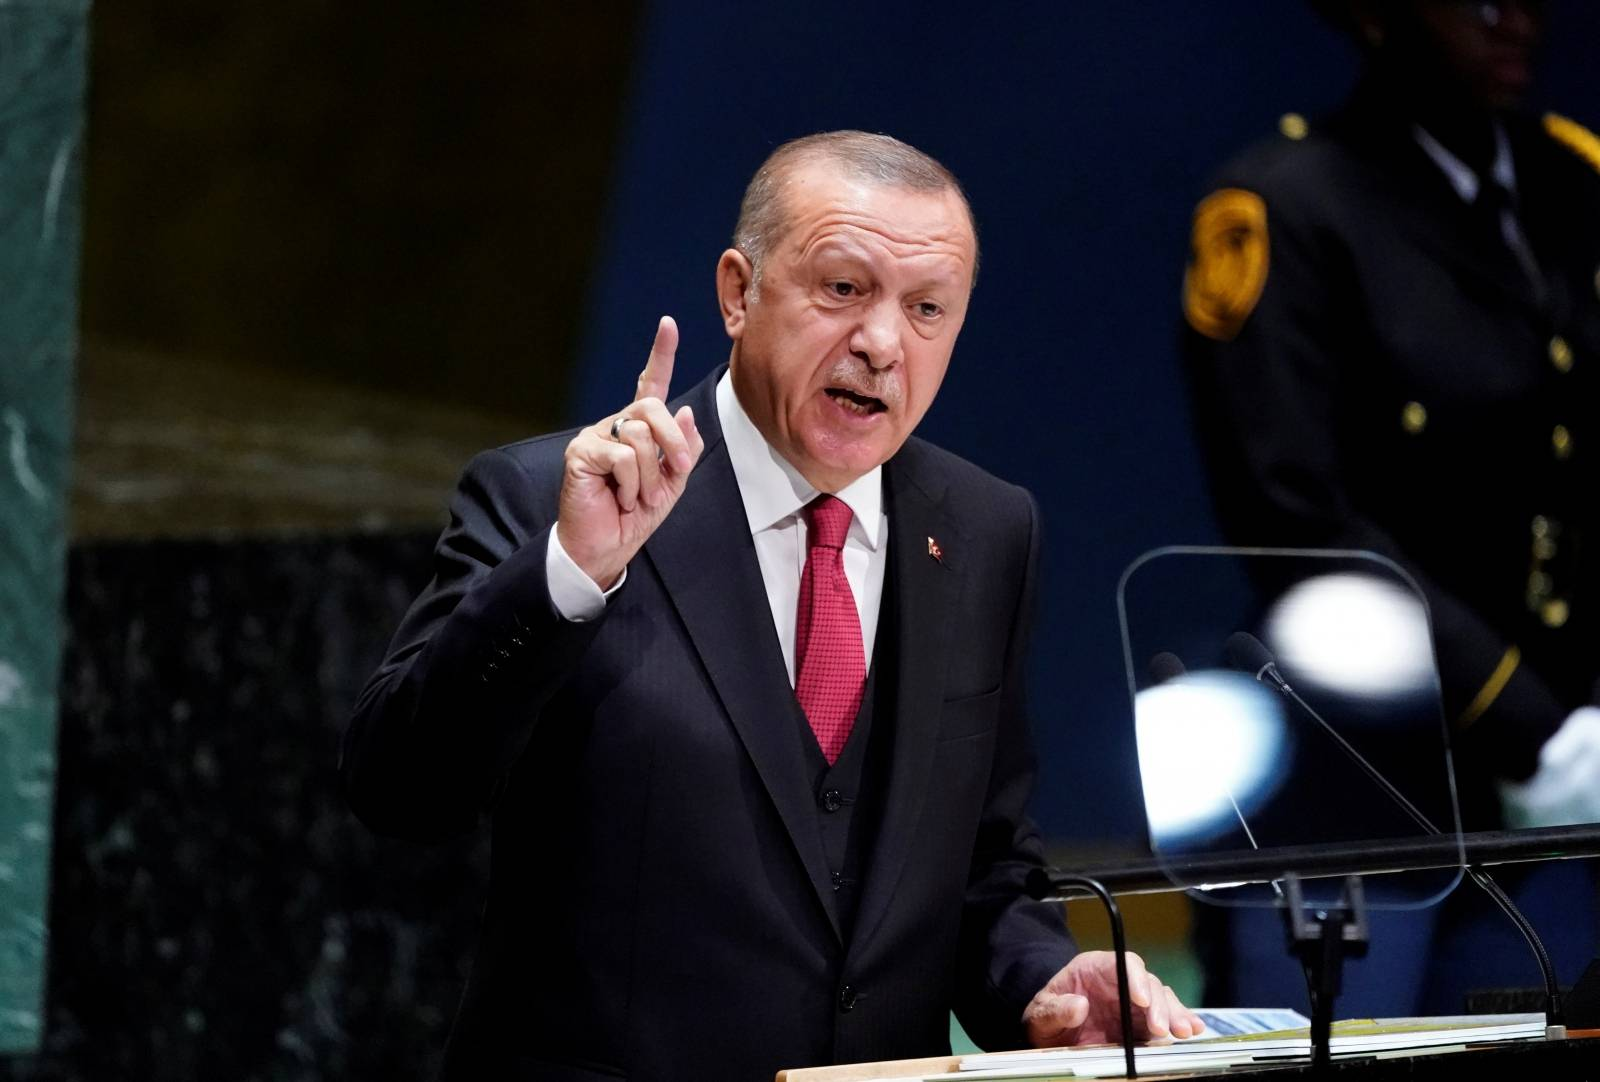 FILE PHOTO: Turkey's President Recep Tayyip Erdogan addresses the 74th session of the United Nations General Assembly at U.N. headquarters in New York City, New York, U.S.